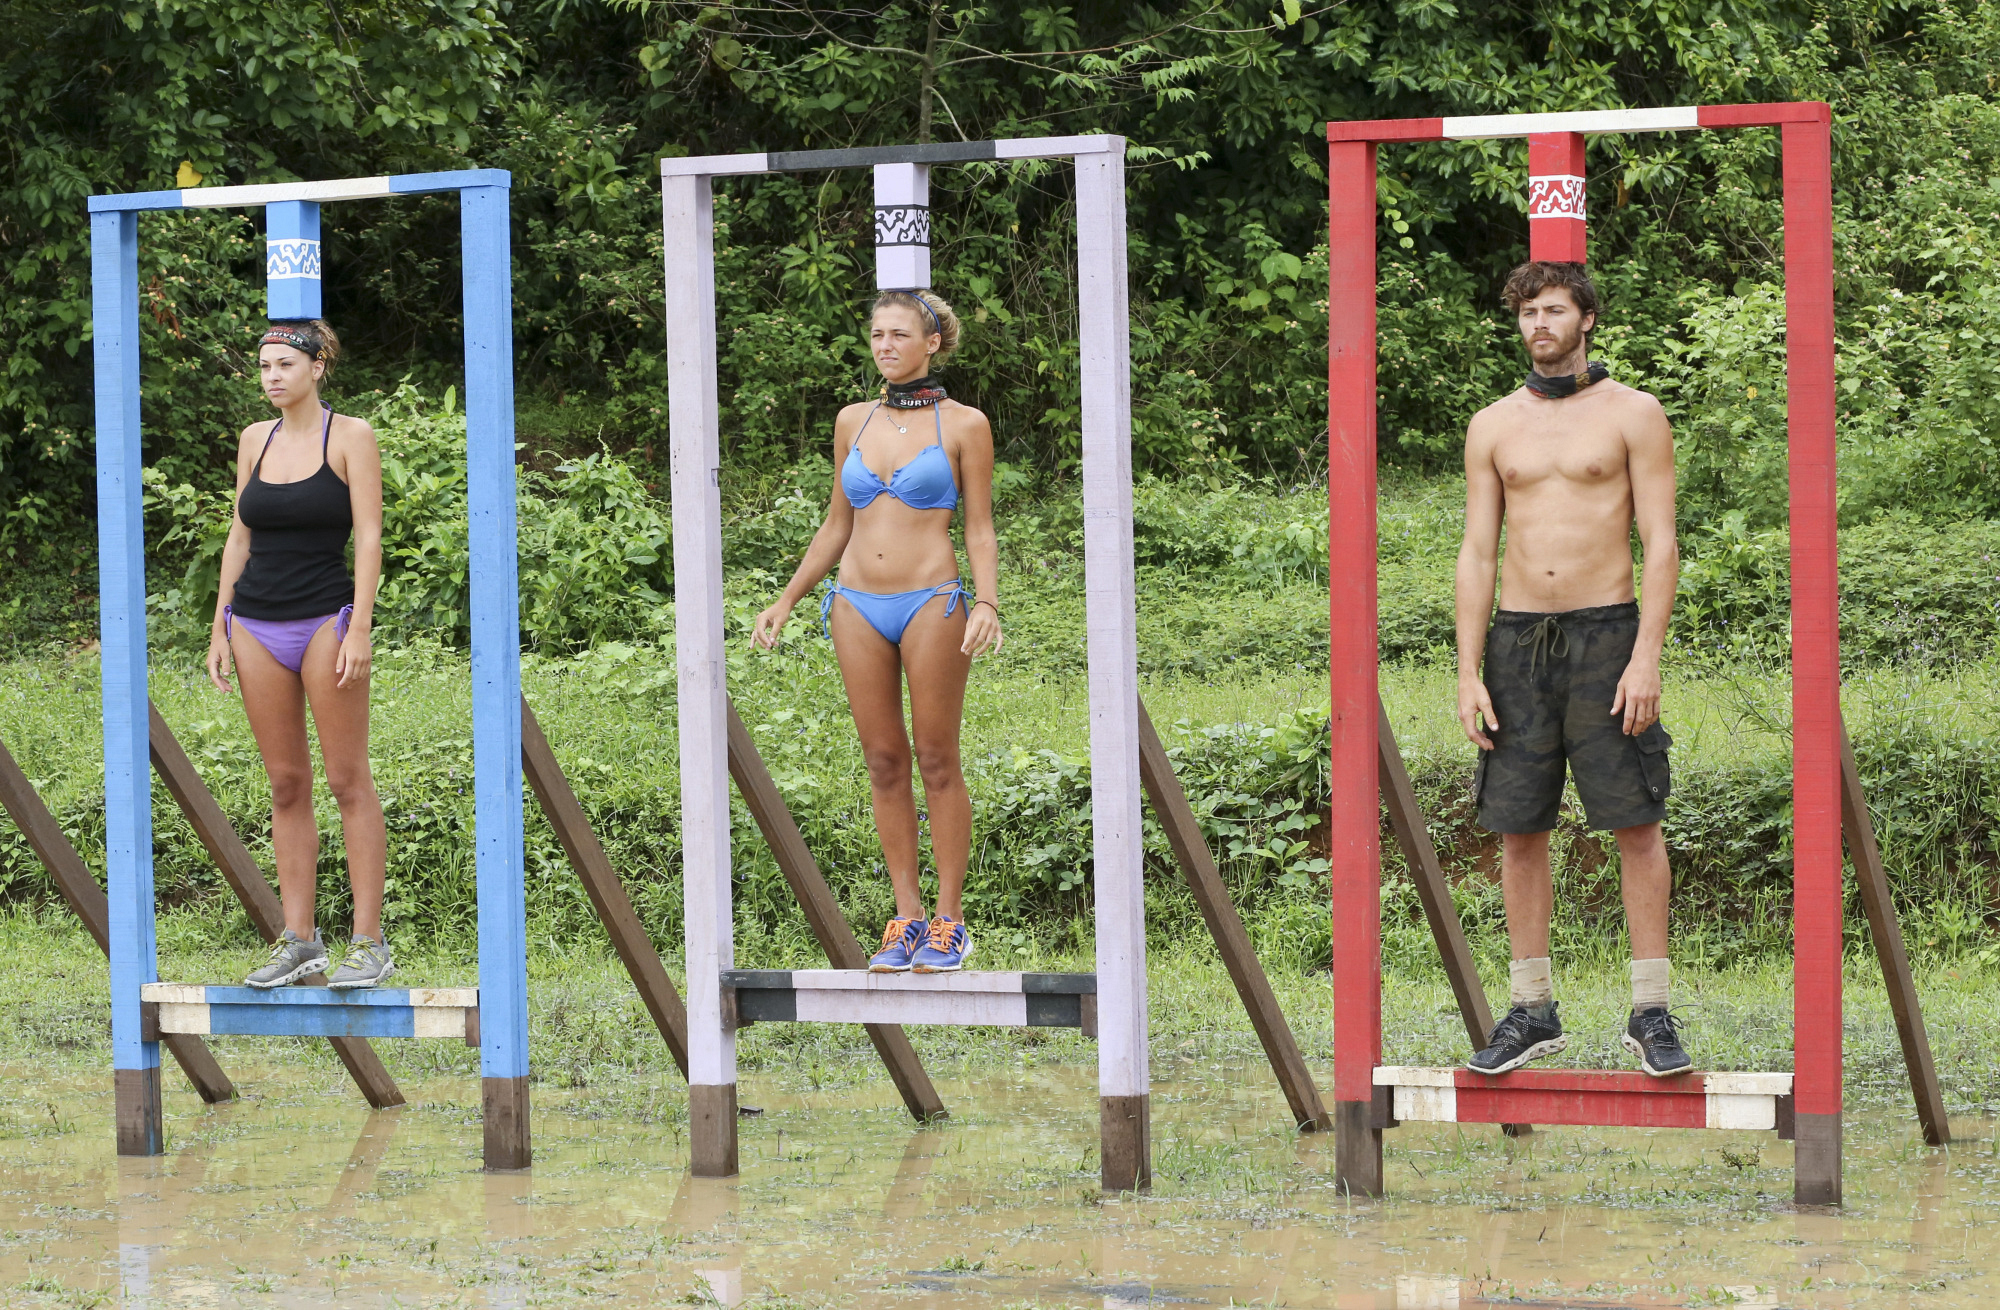 Morgan, Jefra and Jeremiah in Season 28 Episode 7